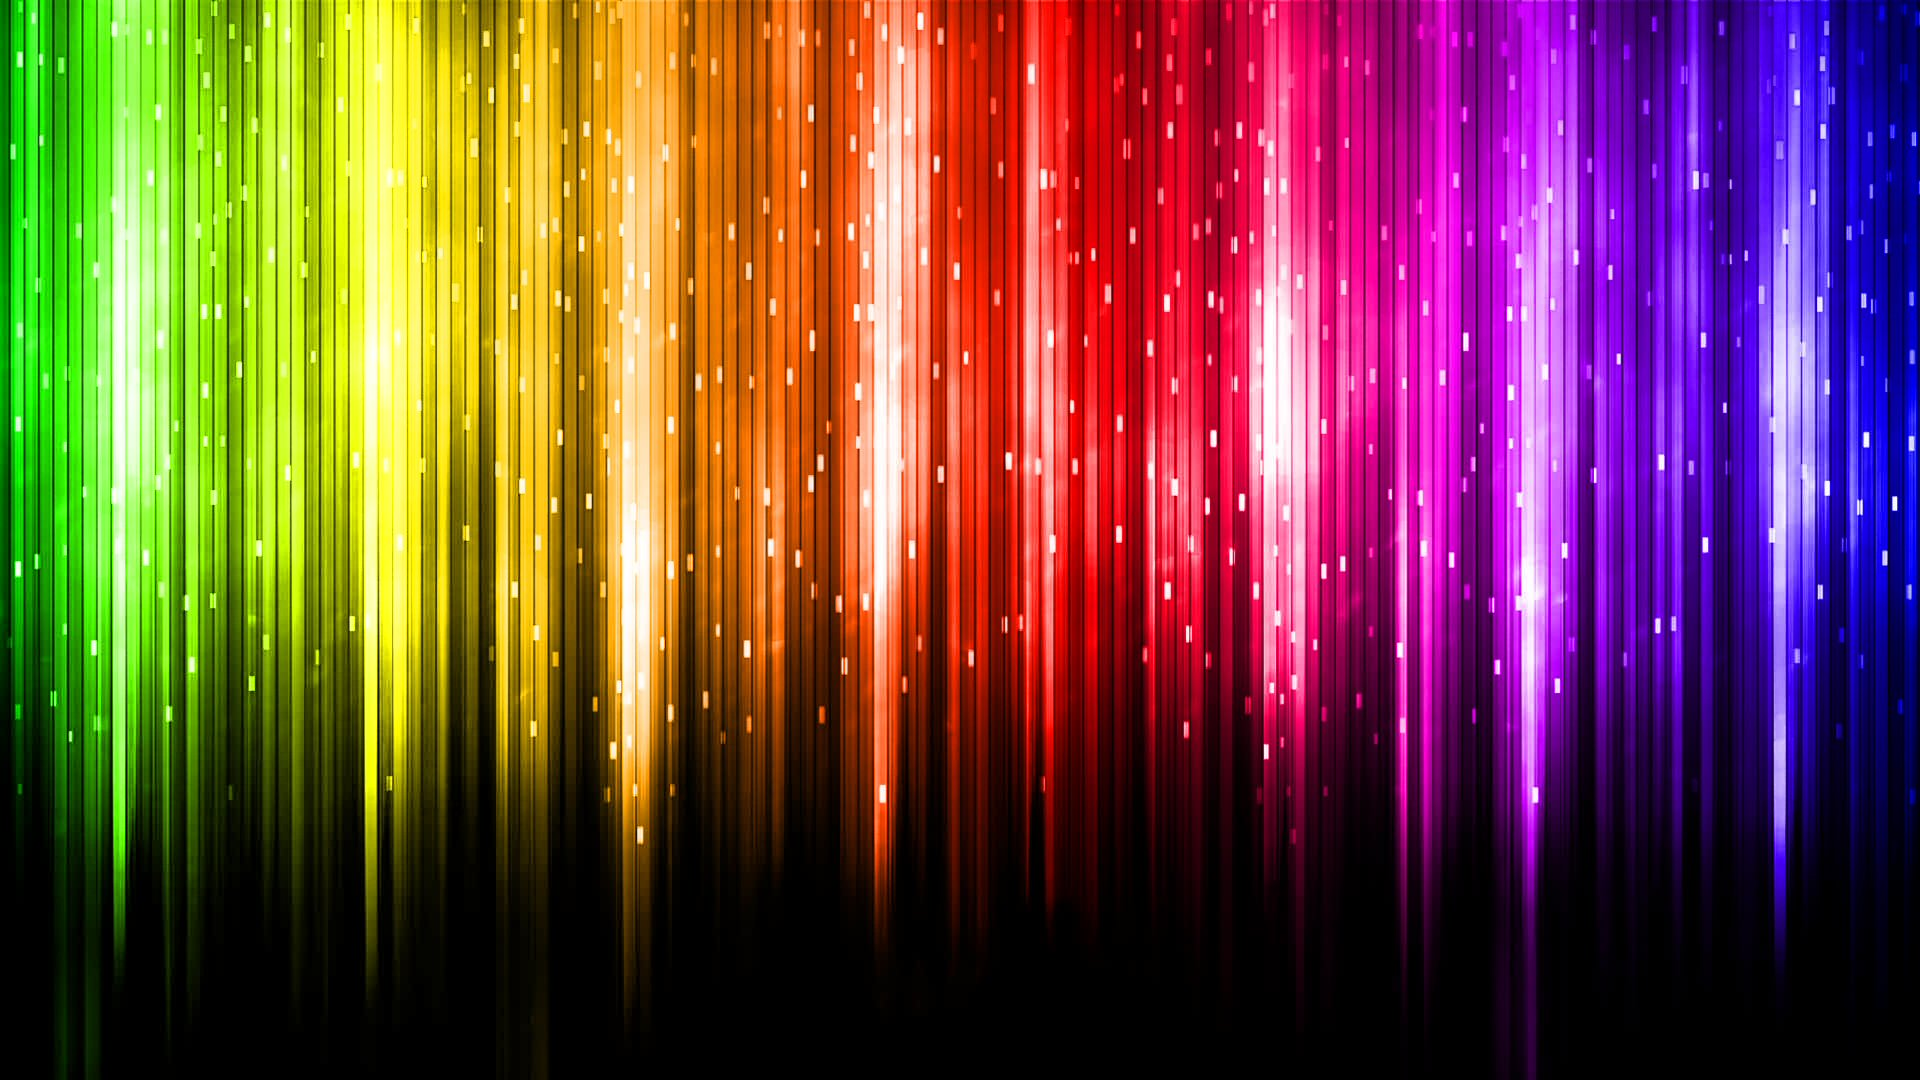 Amazing Colorful Abstract Backgrounds